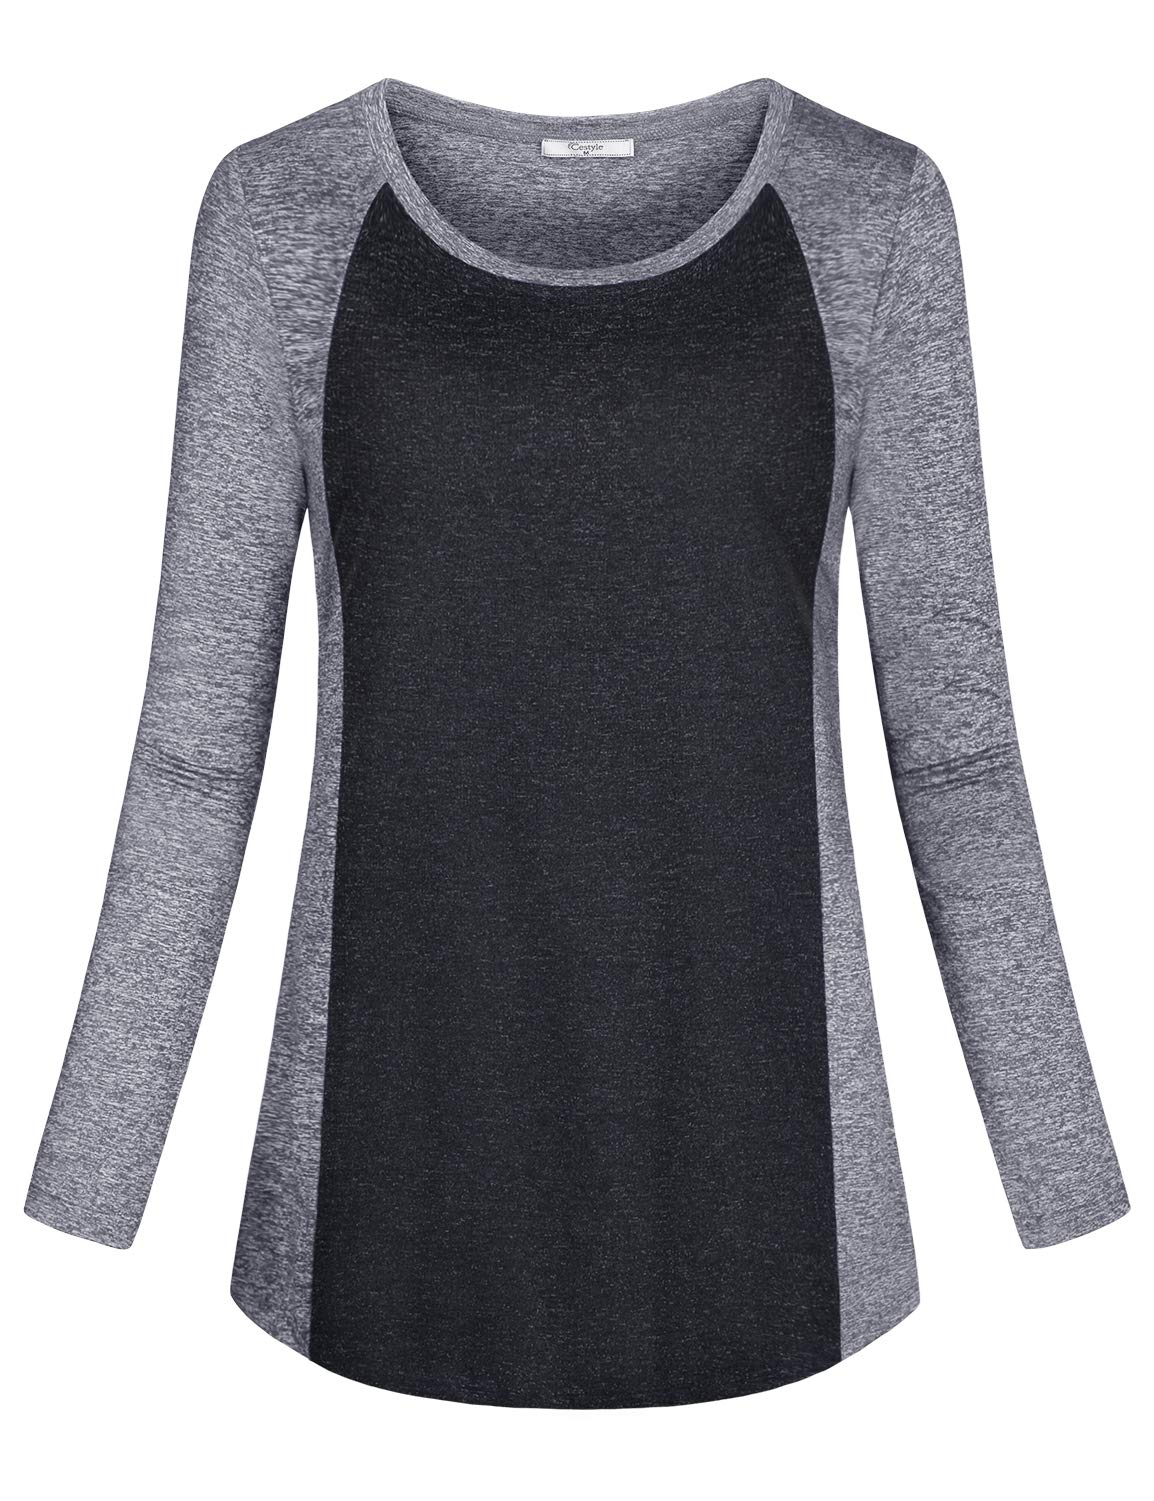 Cestyle Workout Tops for Women Long Sleeve,Ladies Activewear Wicking Shirt Gym Wear Patchwork Crew Neck Tees Loose Fit Outdoor Clothing Light Grey XX-Large